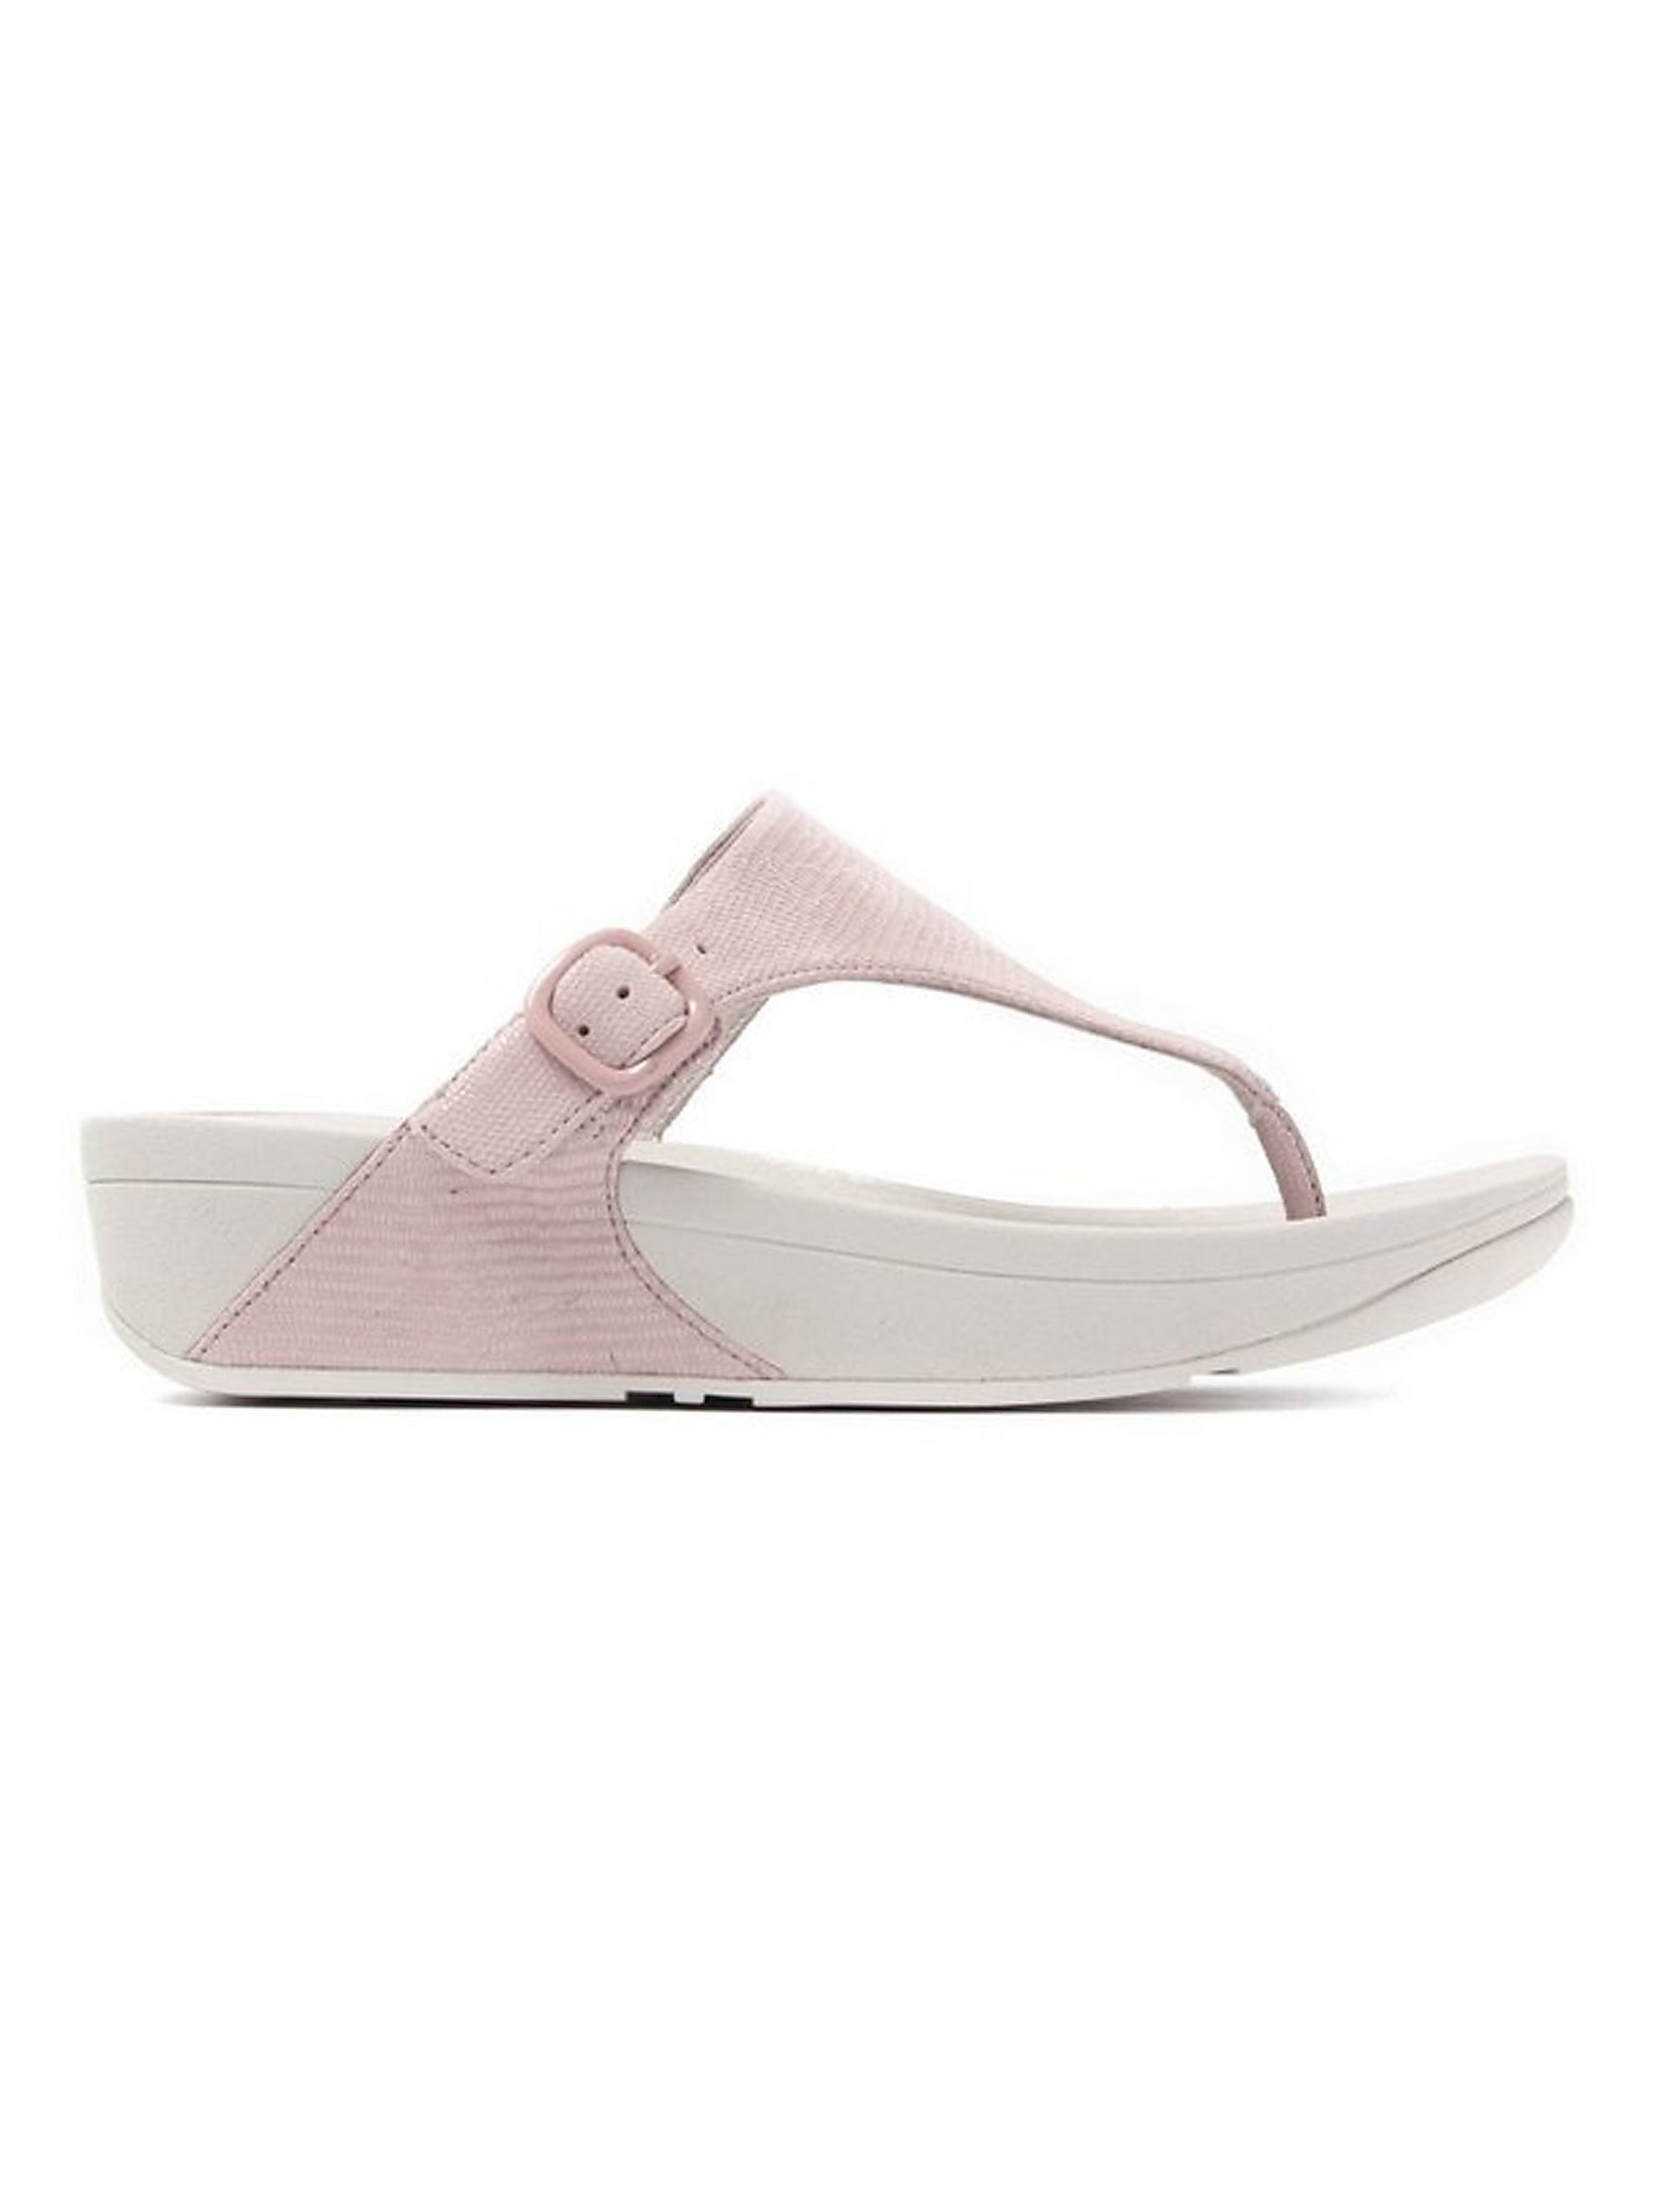 FitFlop  Women's The Skinny Lizard Print Toe-Post Sandals - Nude Pink